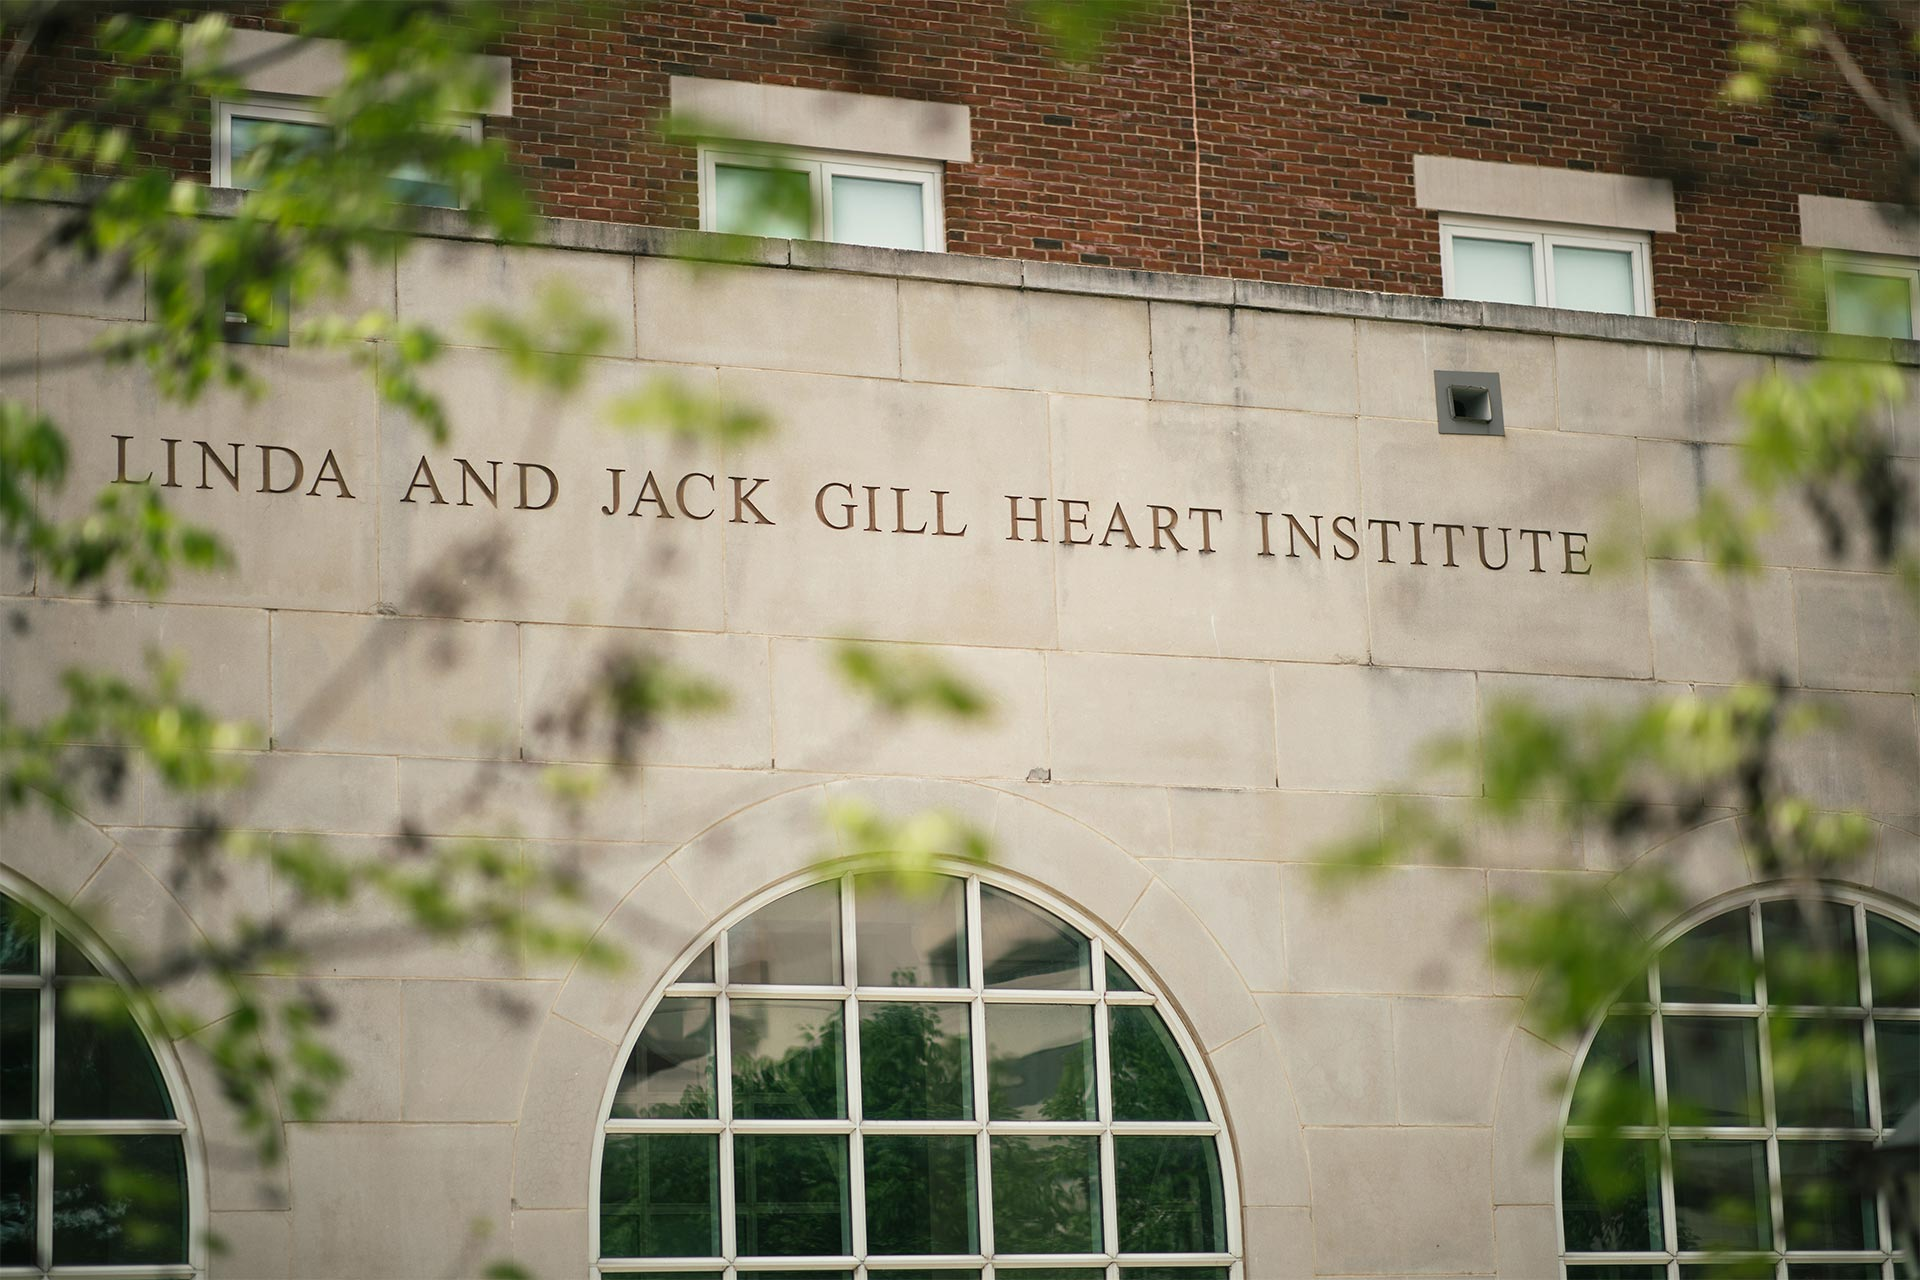 A relief carved into a building that reads Linda and Jack Gill Heart Institute